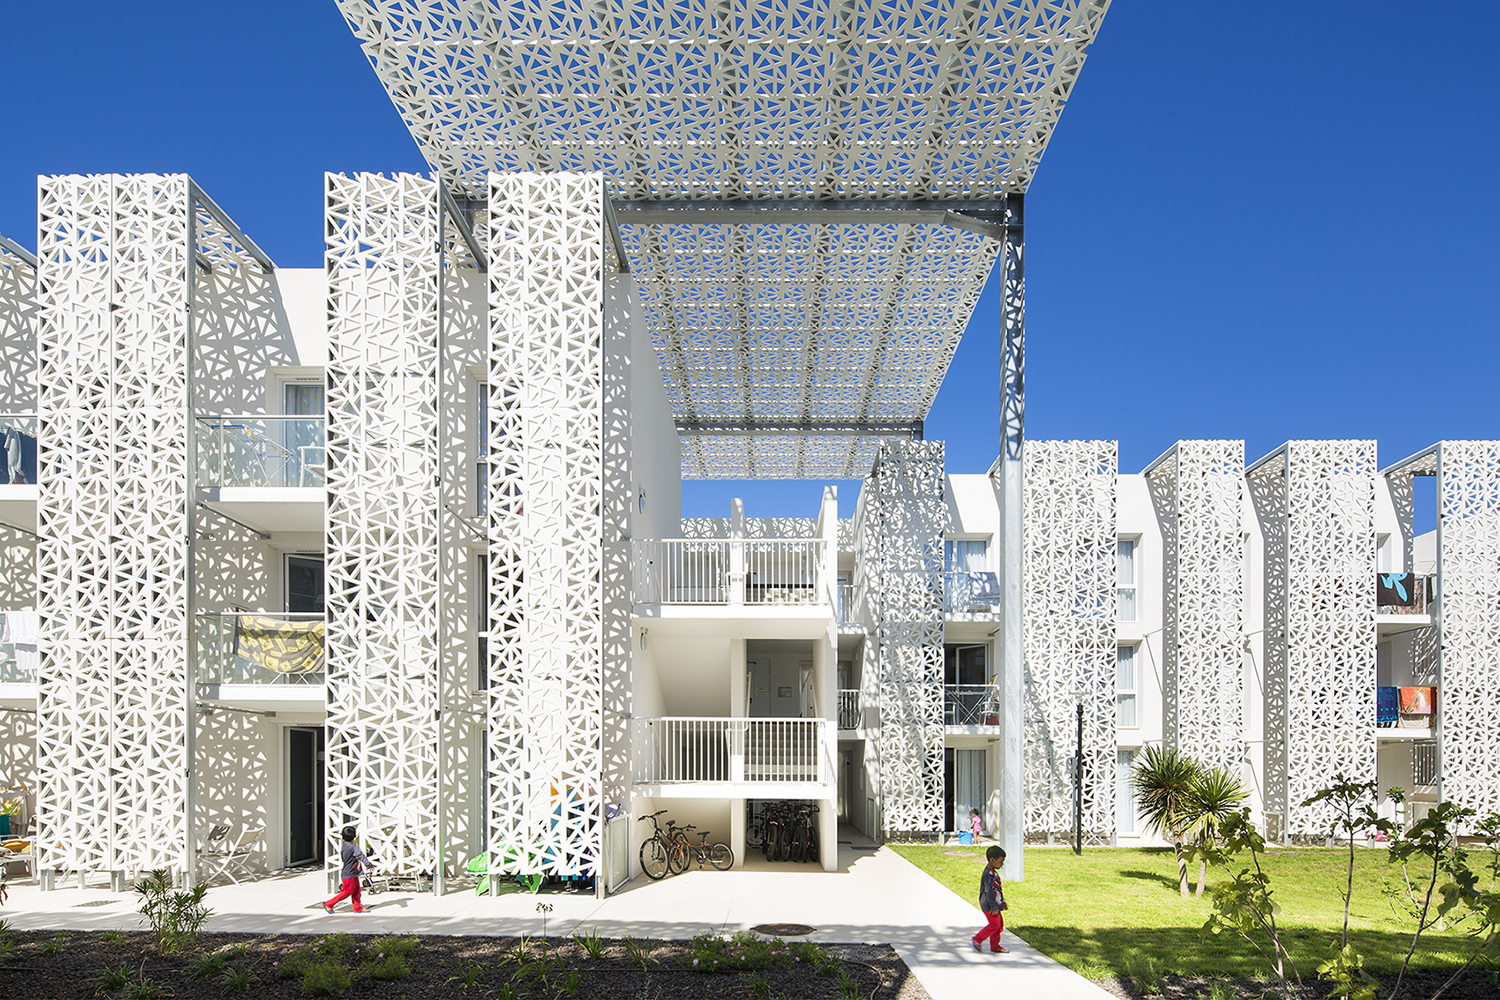 Brise soleil perforated facades latticework ductal uhpc for Hotels design en france